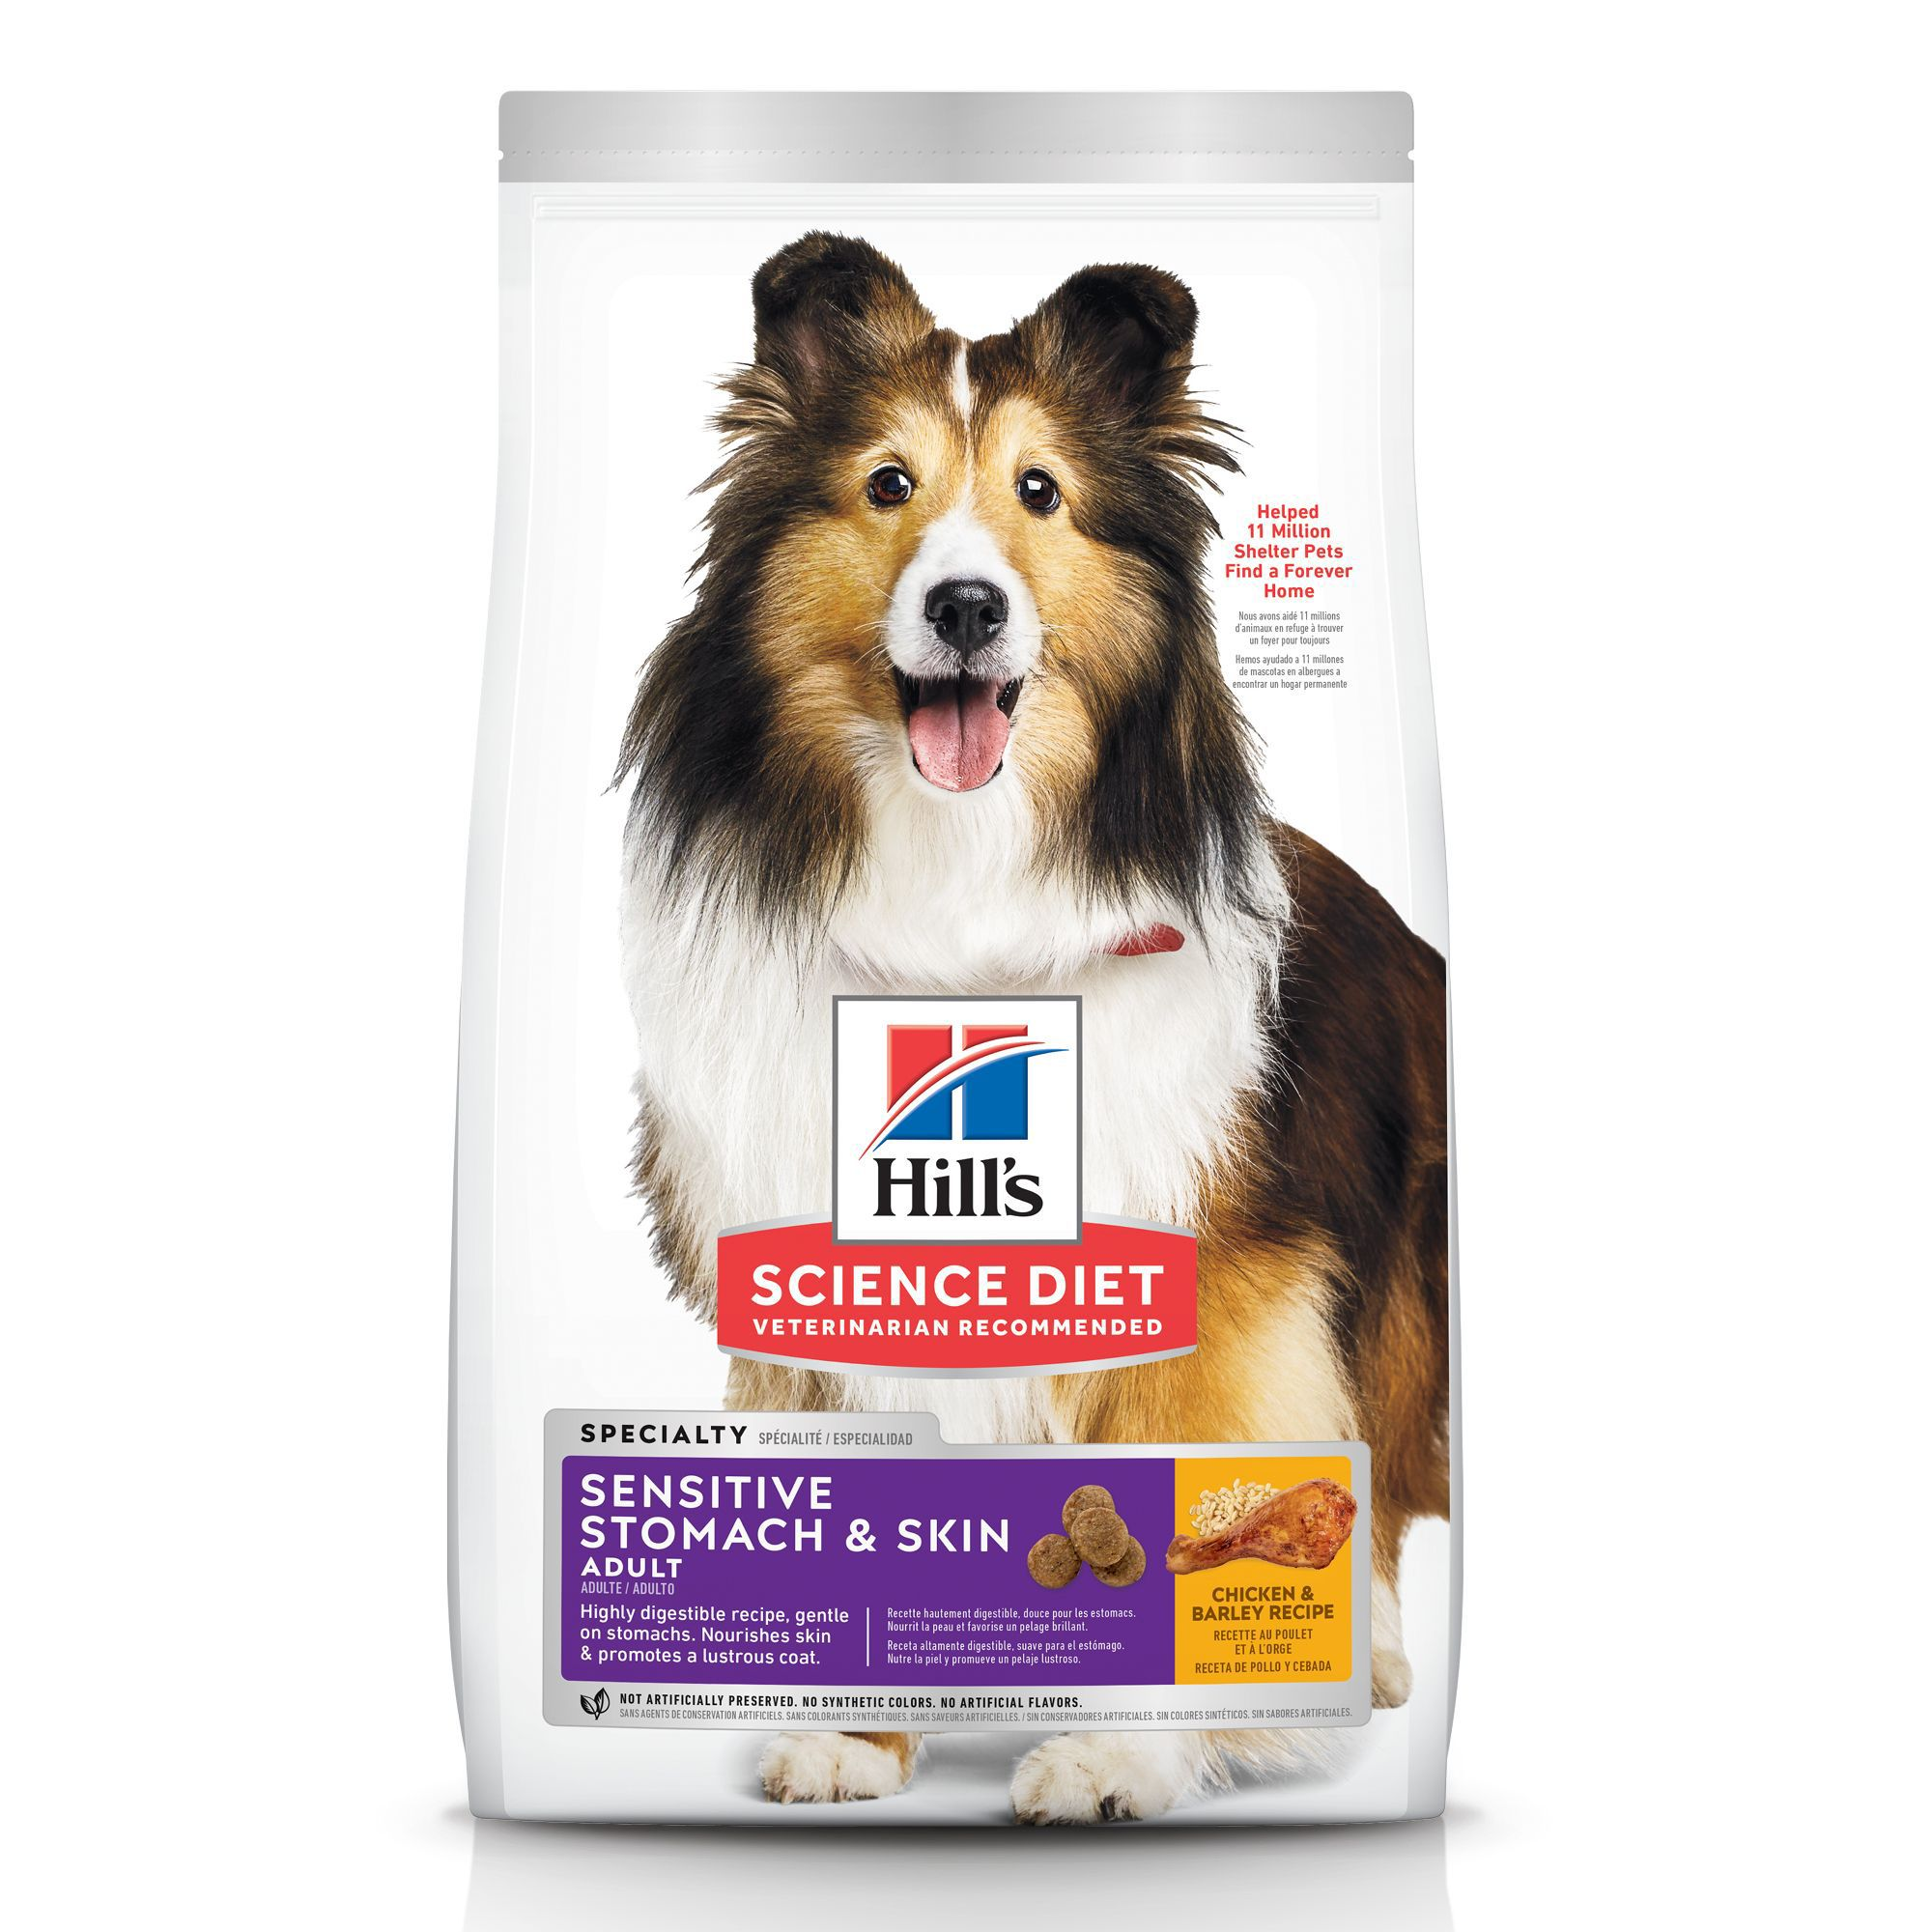 Hill's® Science Diet® Sensitive Stomach & Skin Adult Dog Food